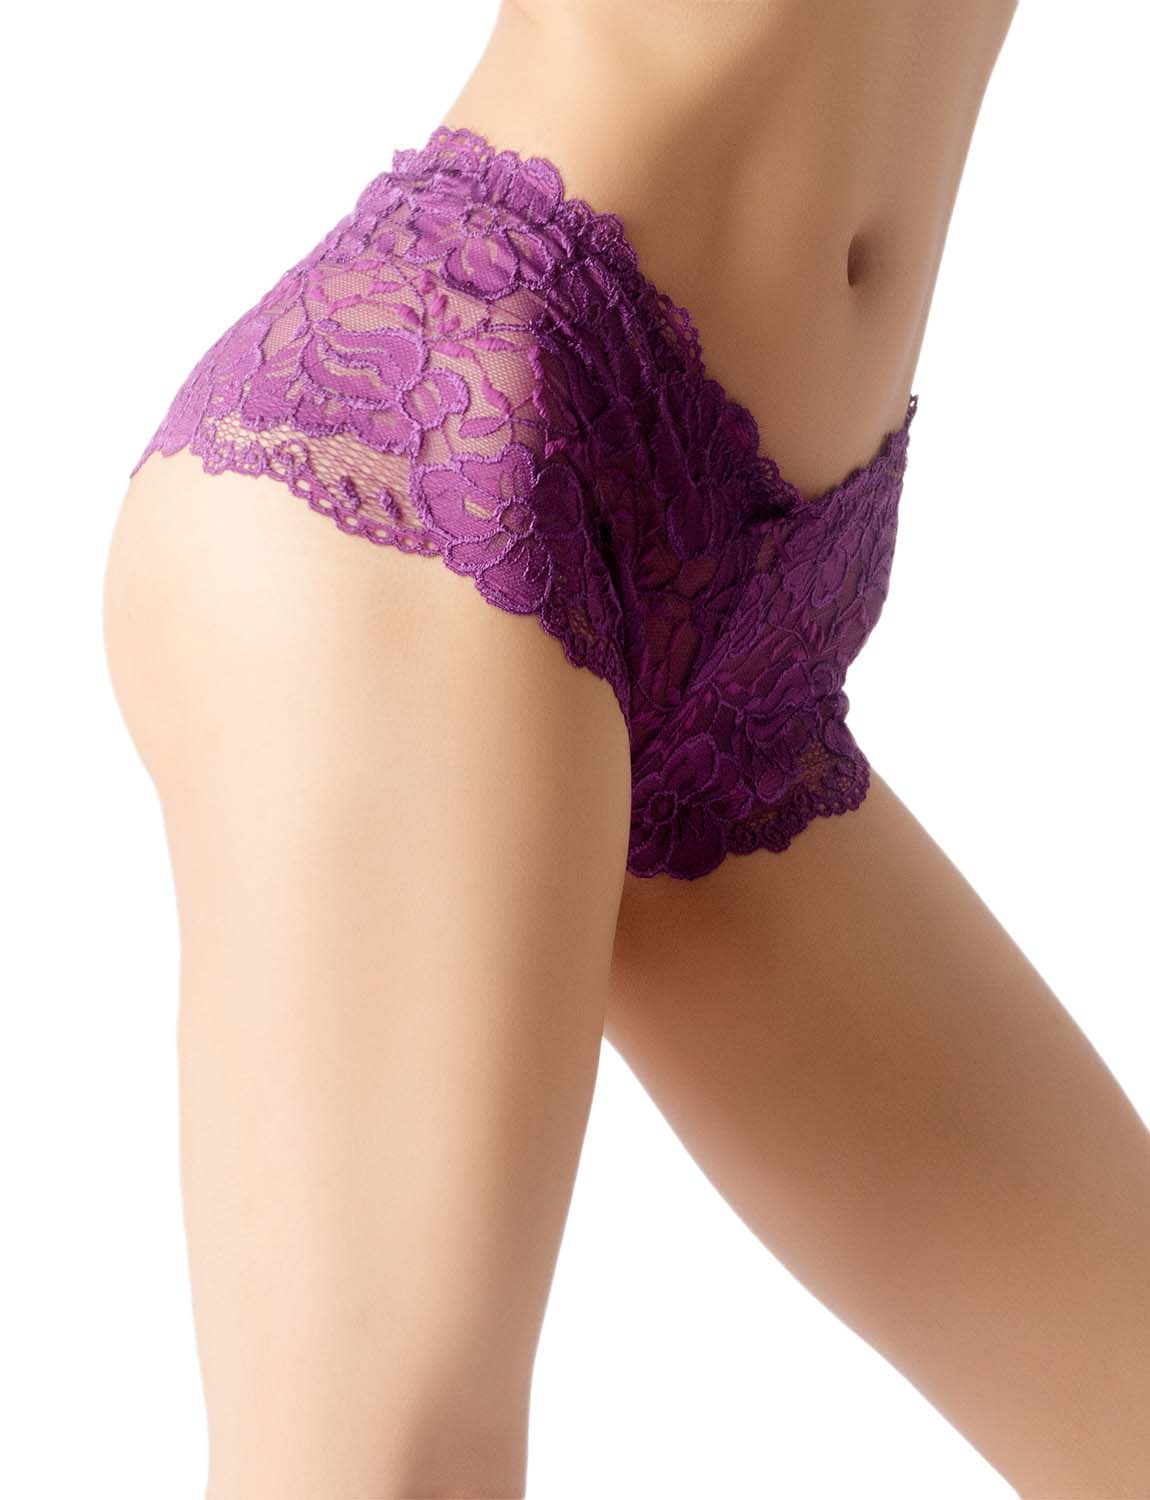 Women's Lace Mesh See-Through Breathable Underwear Low Rise Hipster Panty, Size: 2XL, Purple